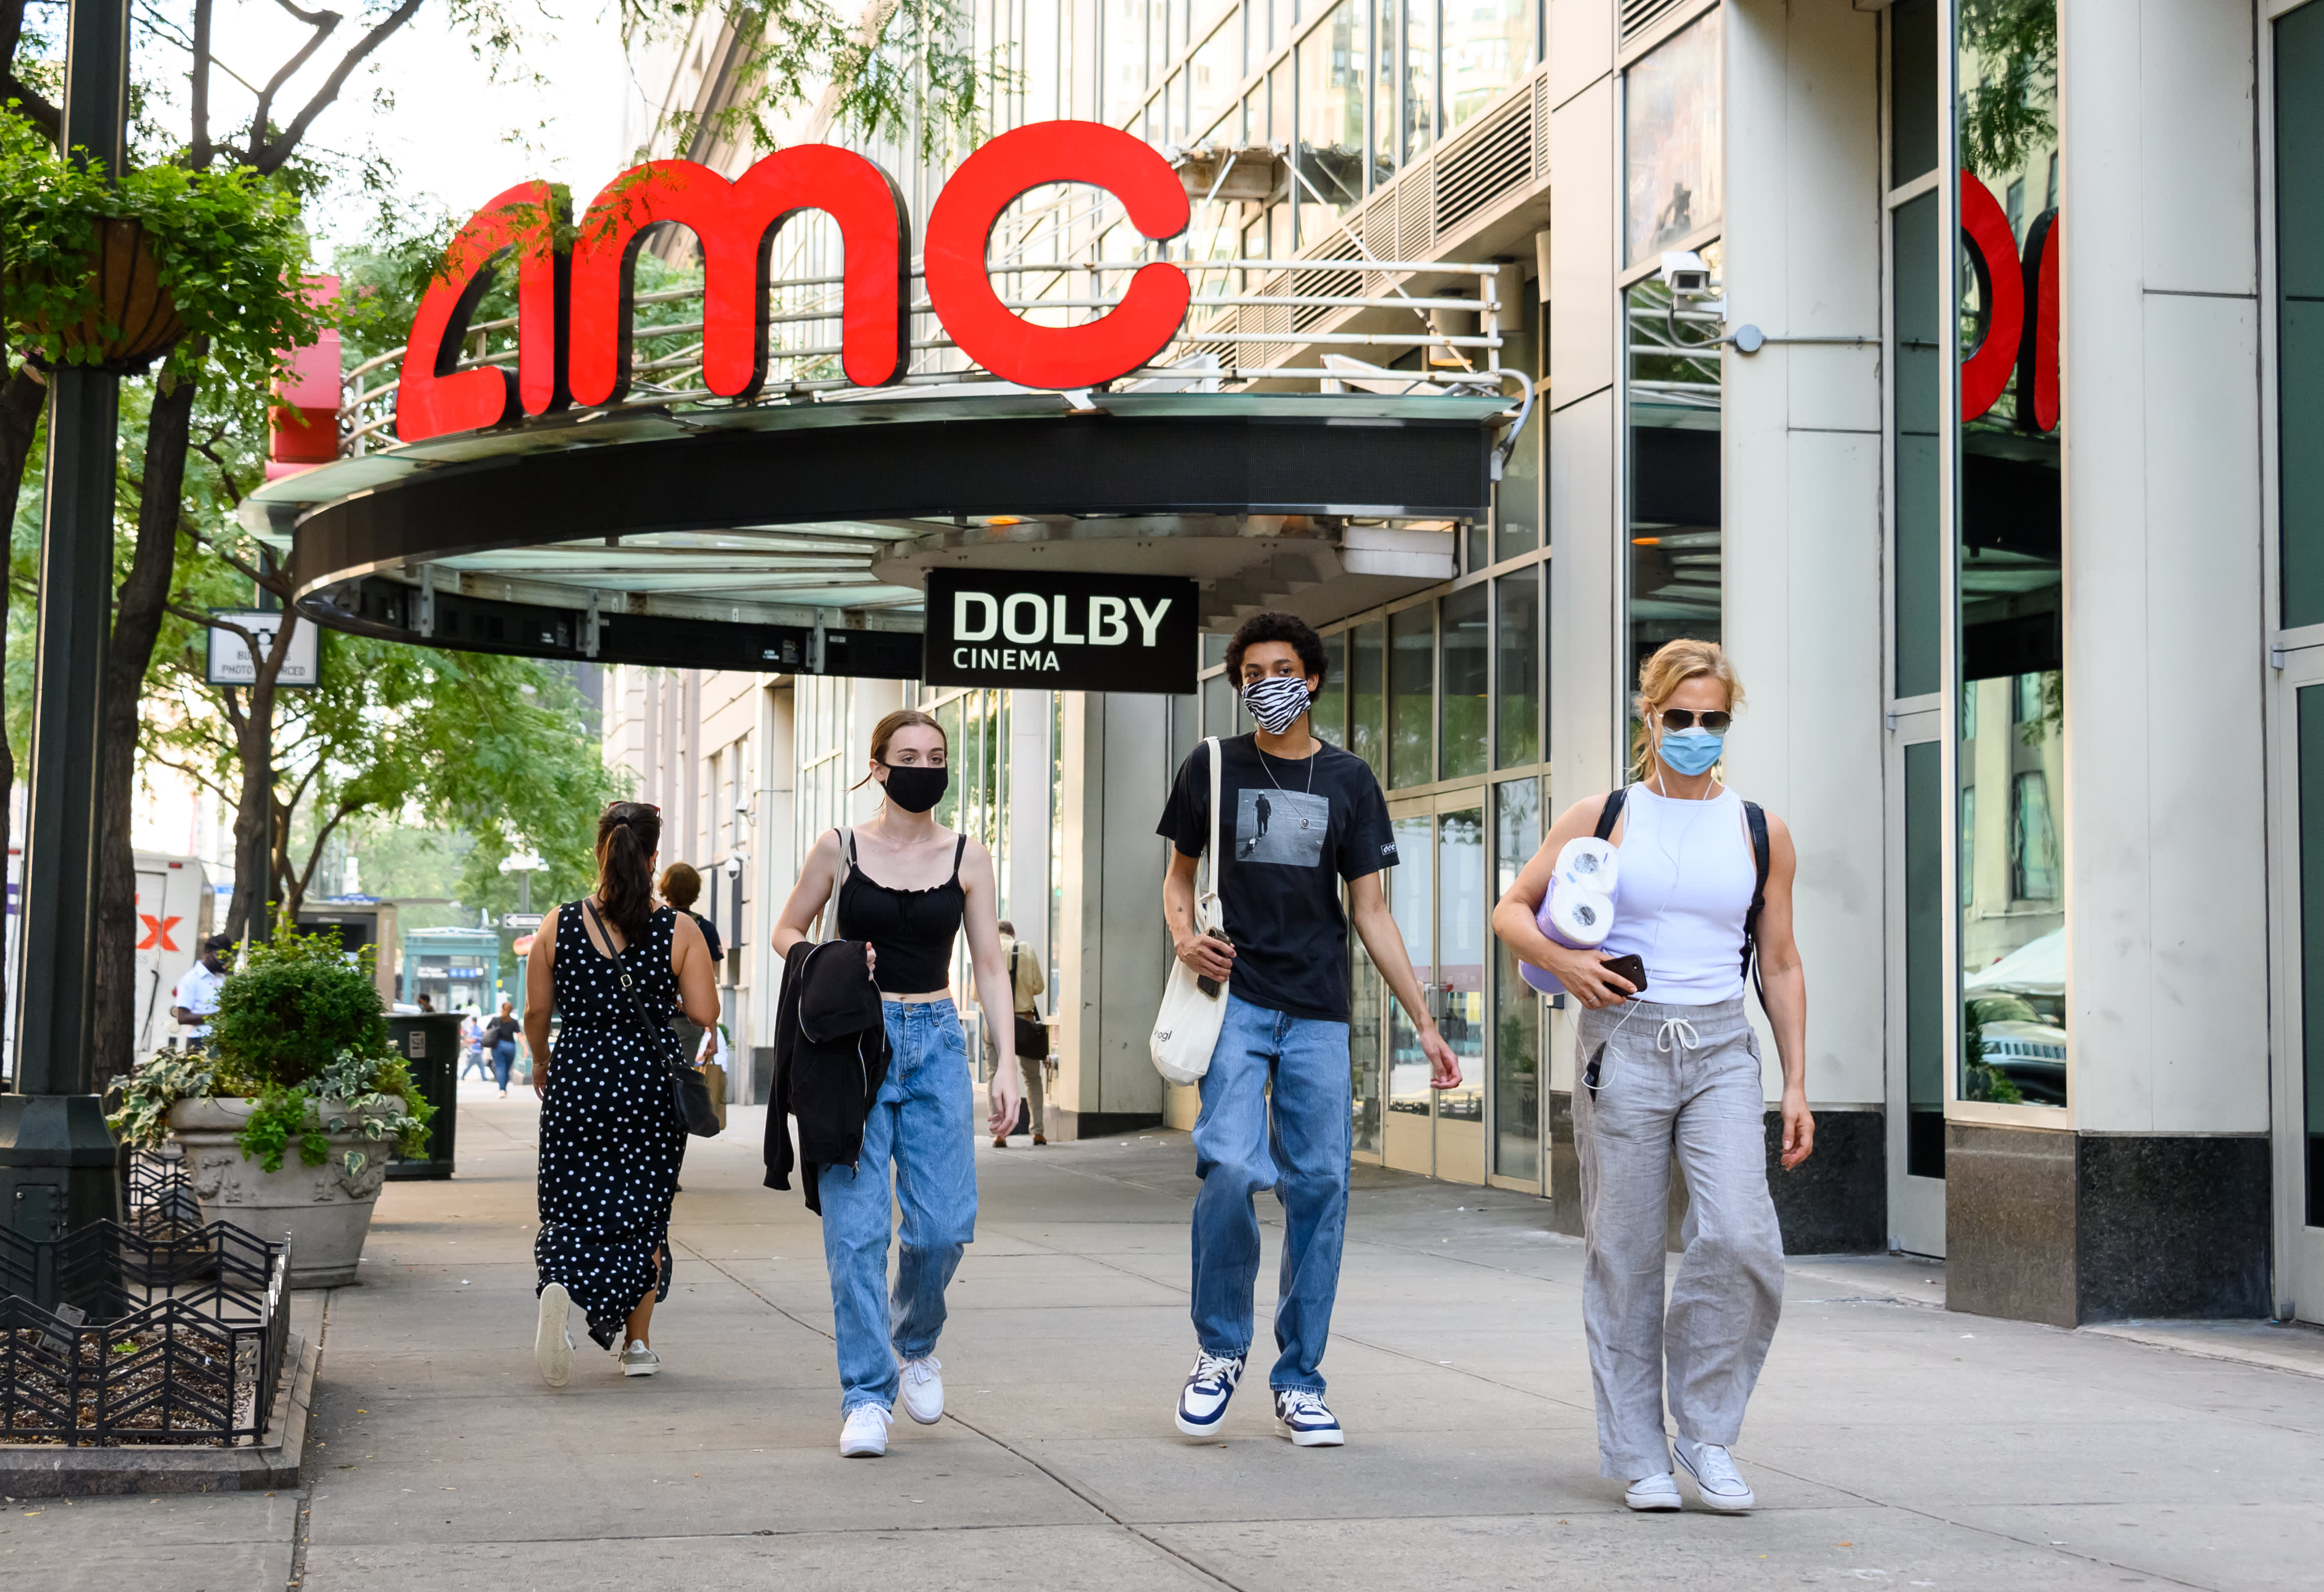 Amc Selling 15 Cent Tickets Is It Safe To Go To A Movie Theater